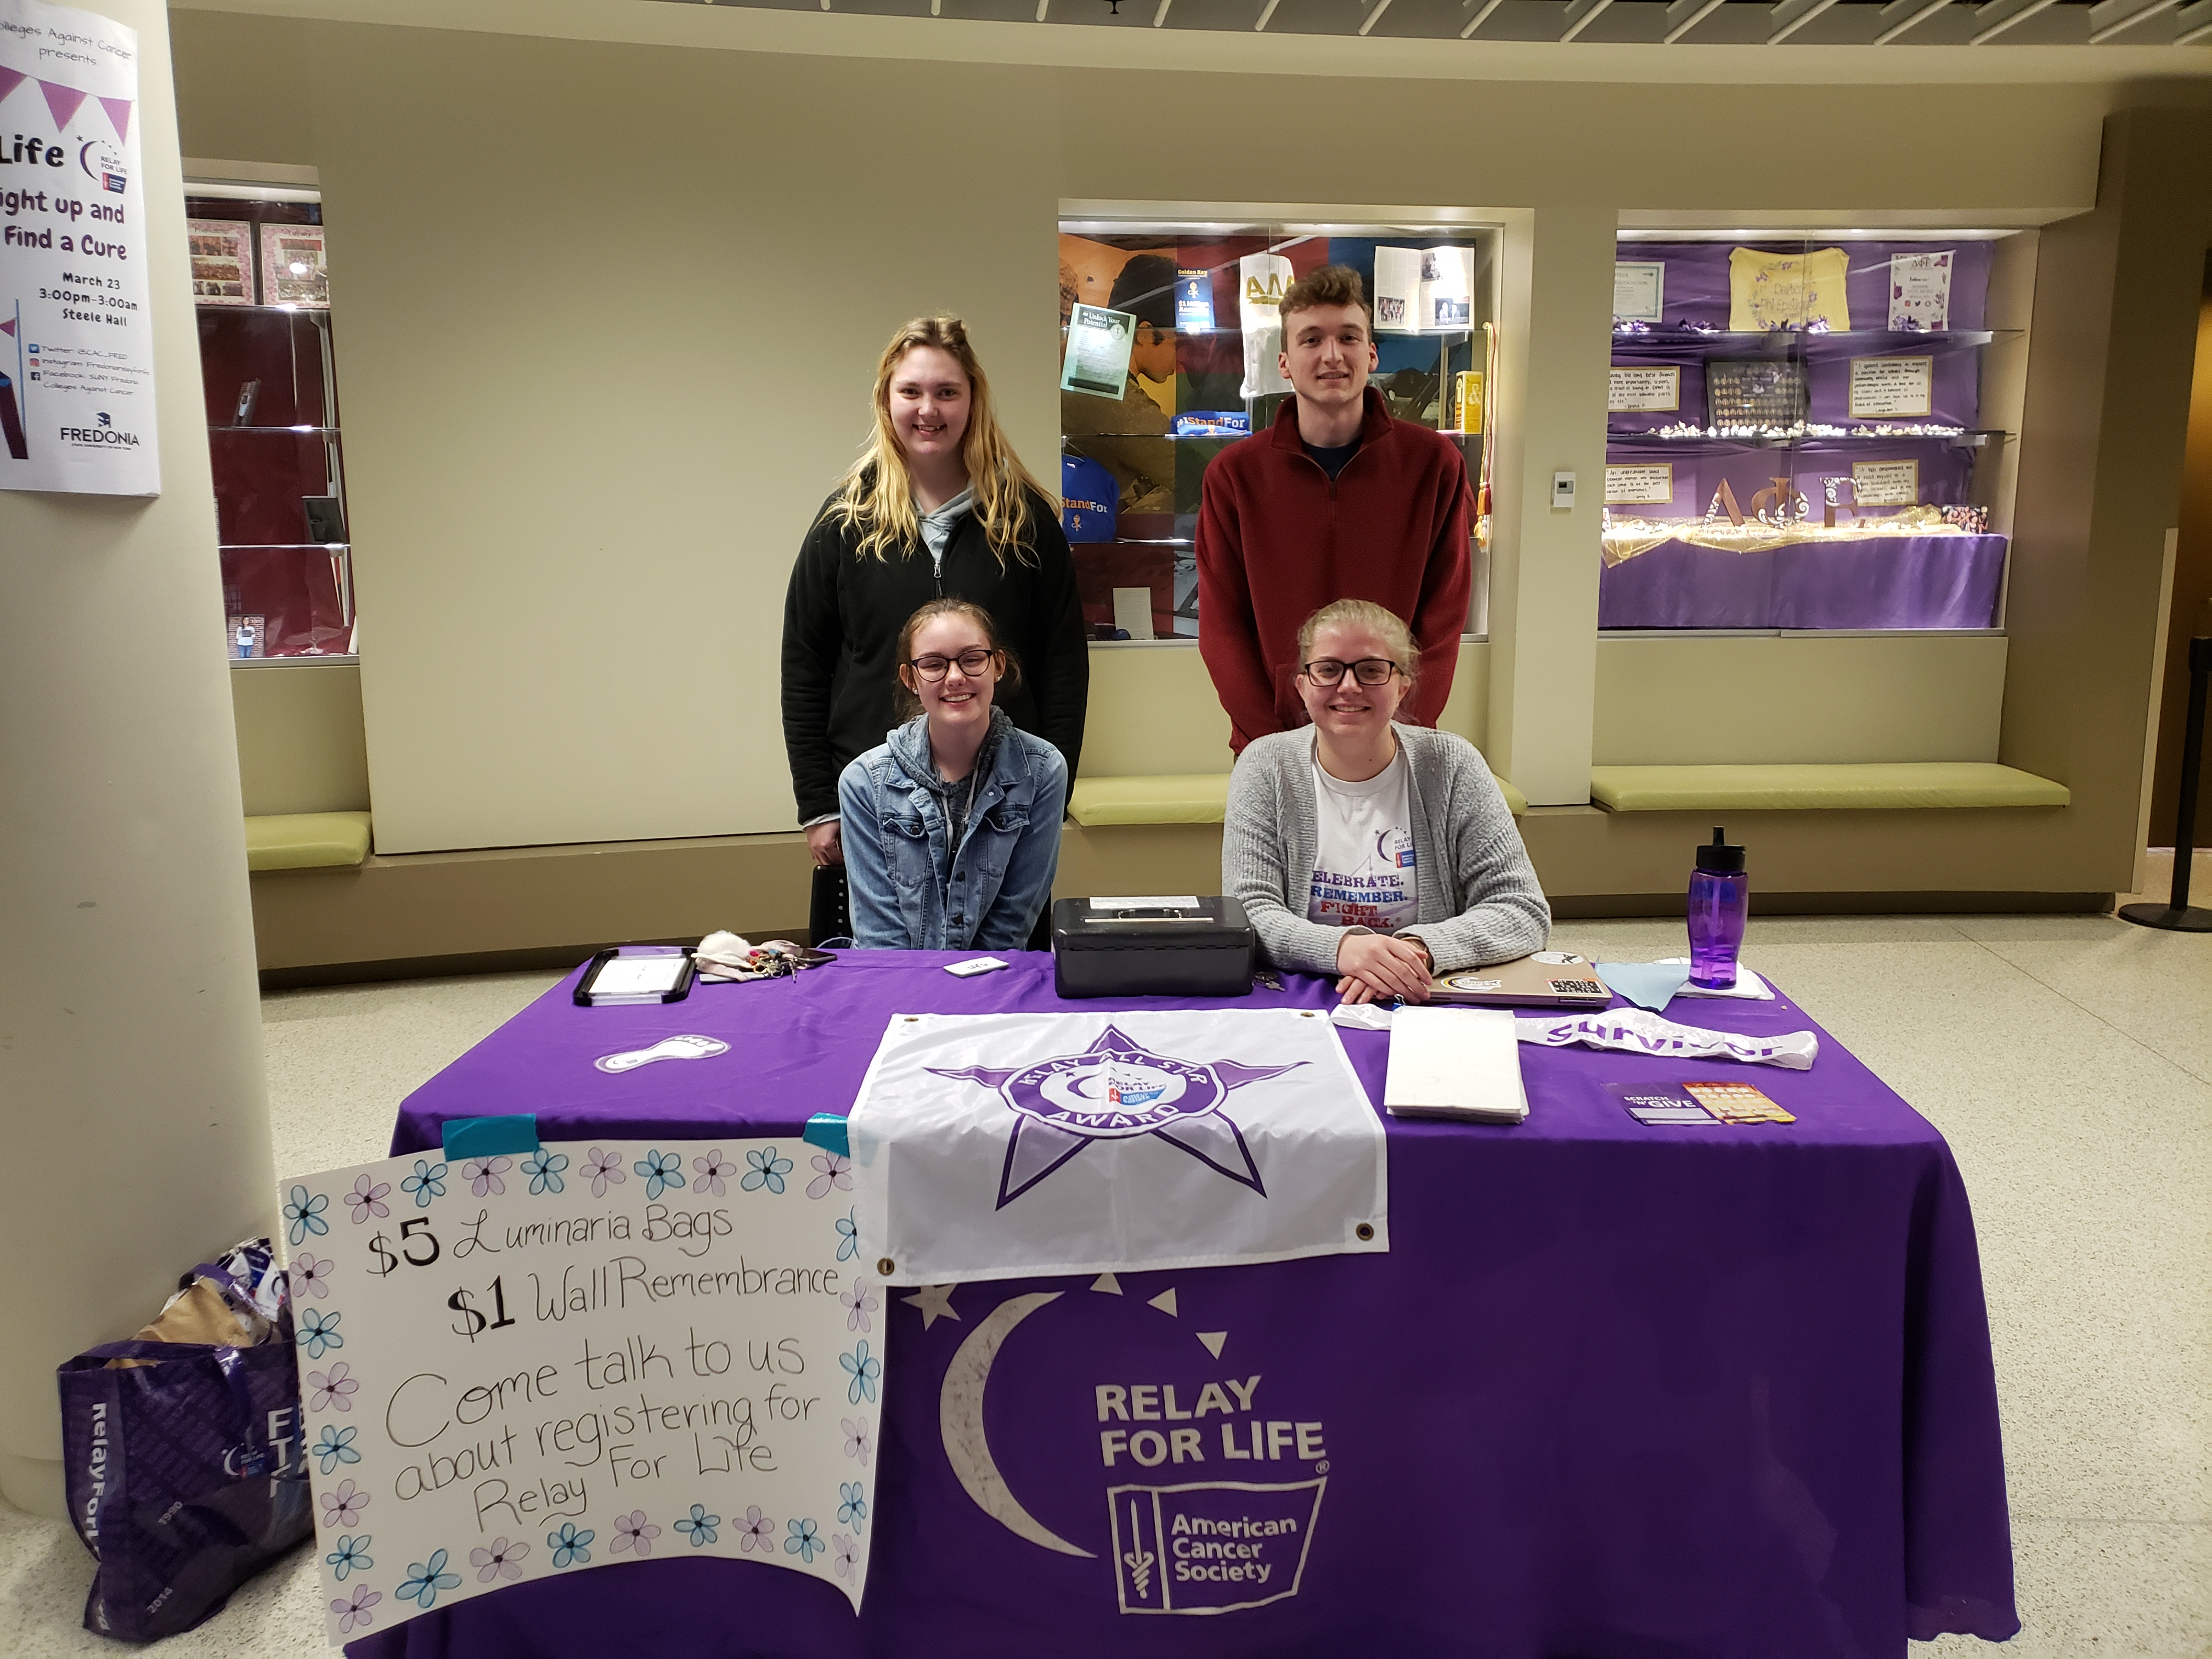 Relay for Lofe -Intern